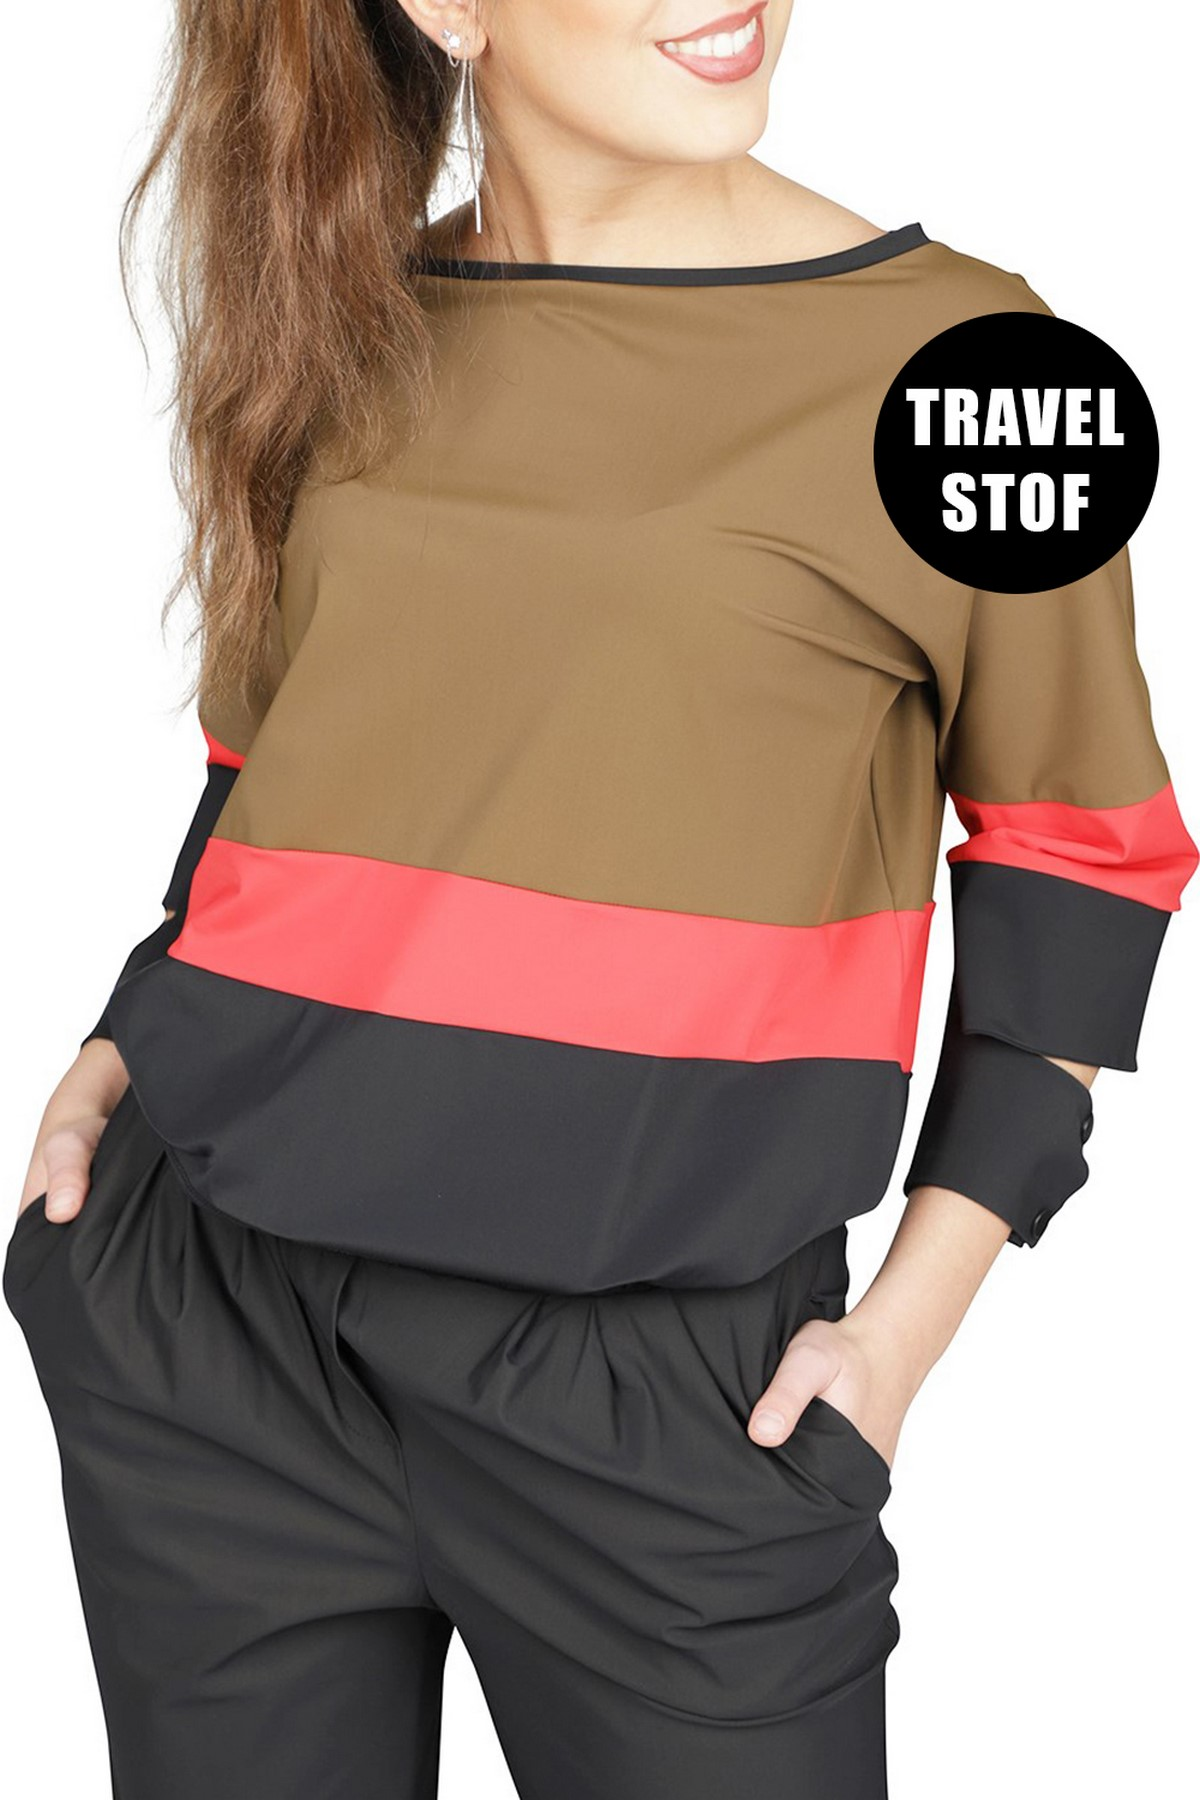 Fifth House by NIKKIE Shirt - Top Multicolor Eryn Cuff Top